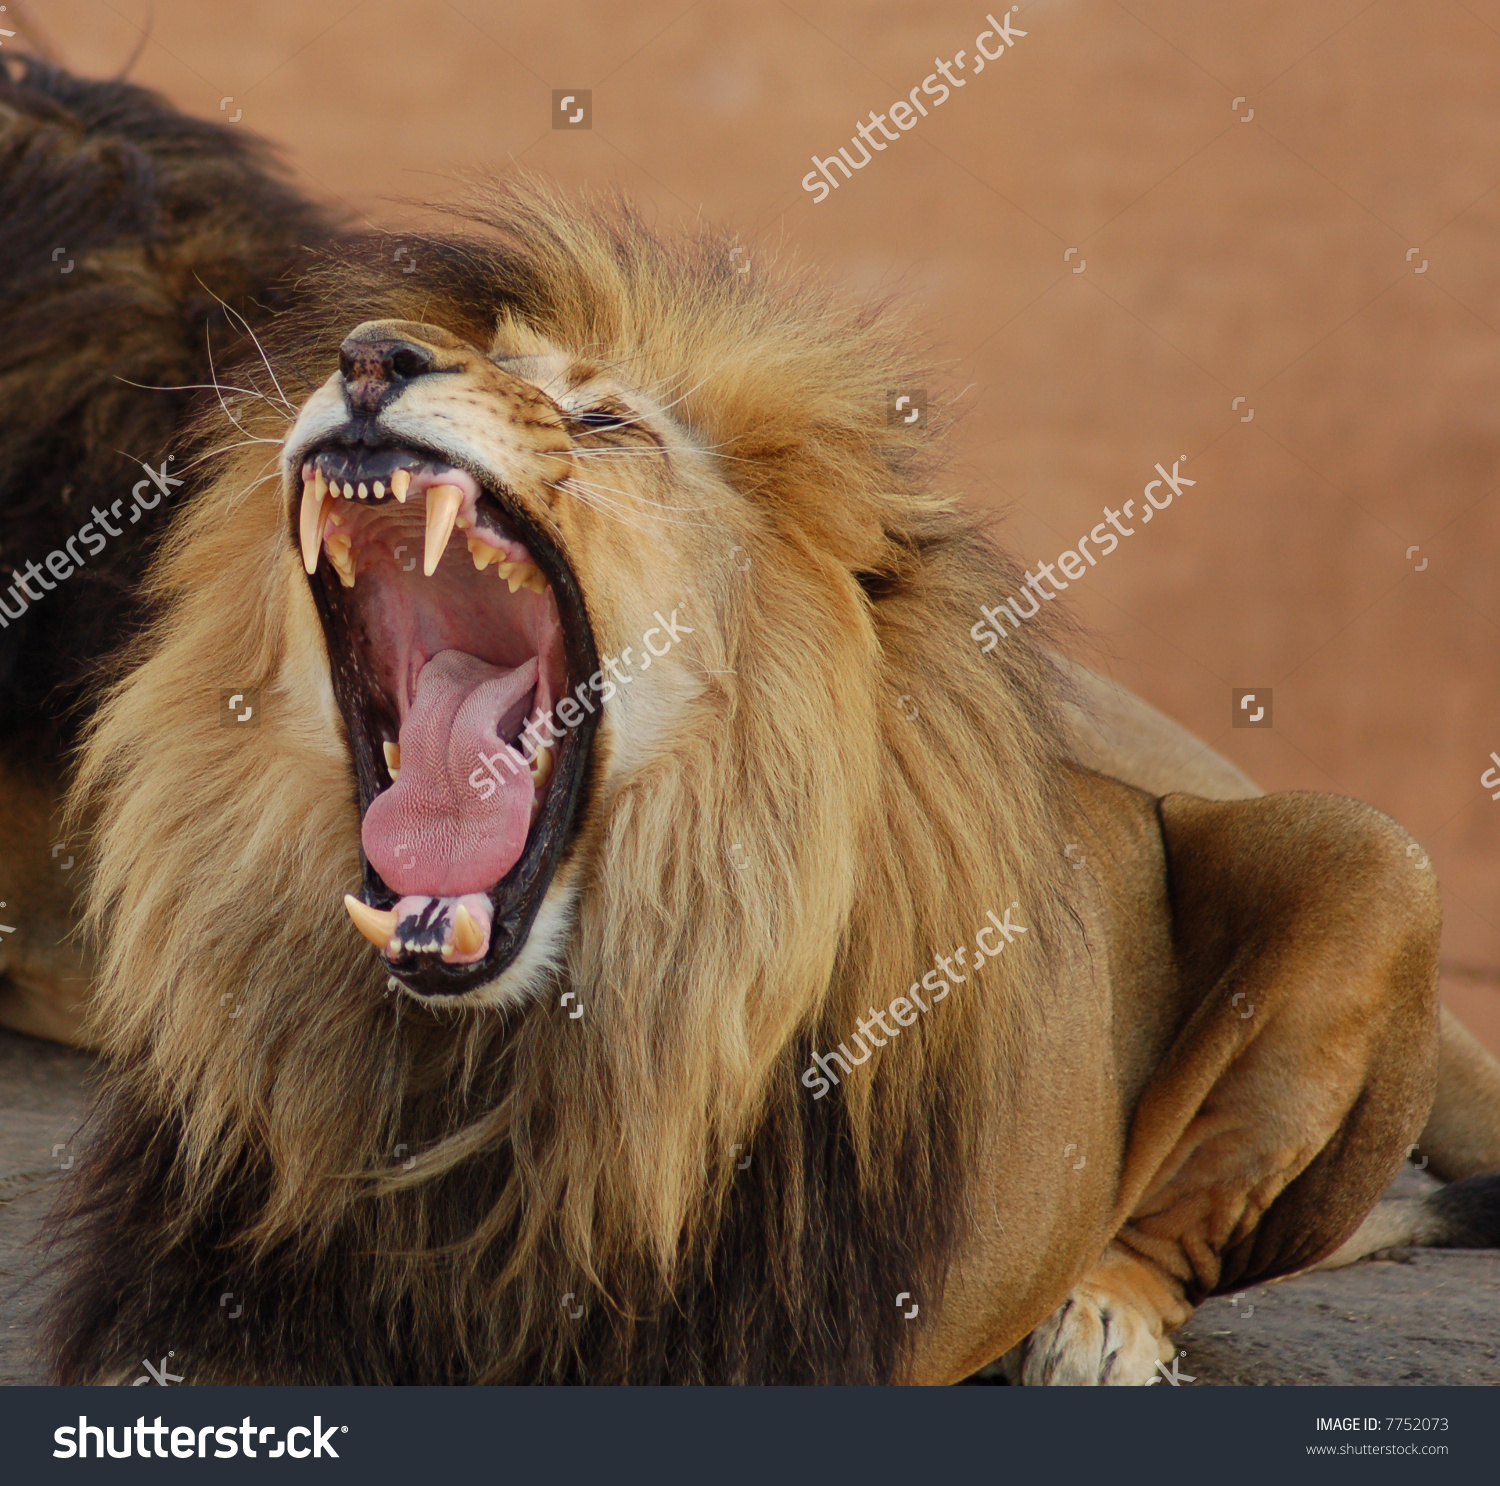 Lion jaw mouth clipart.